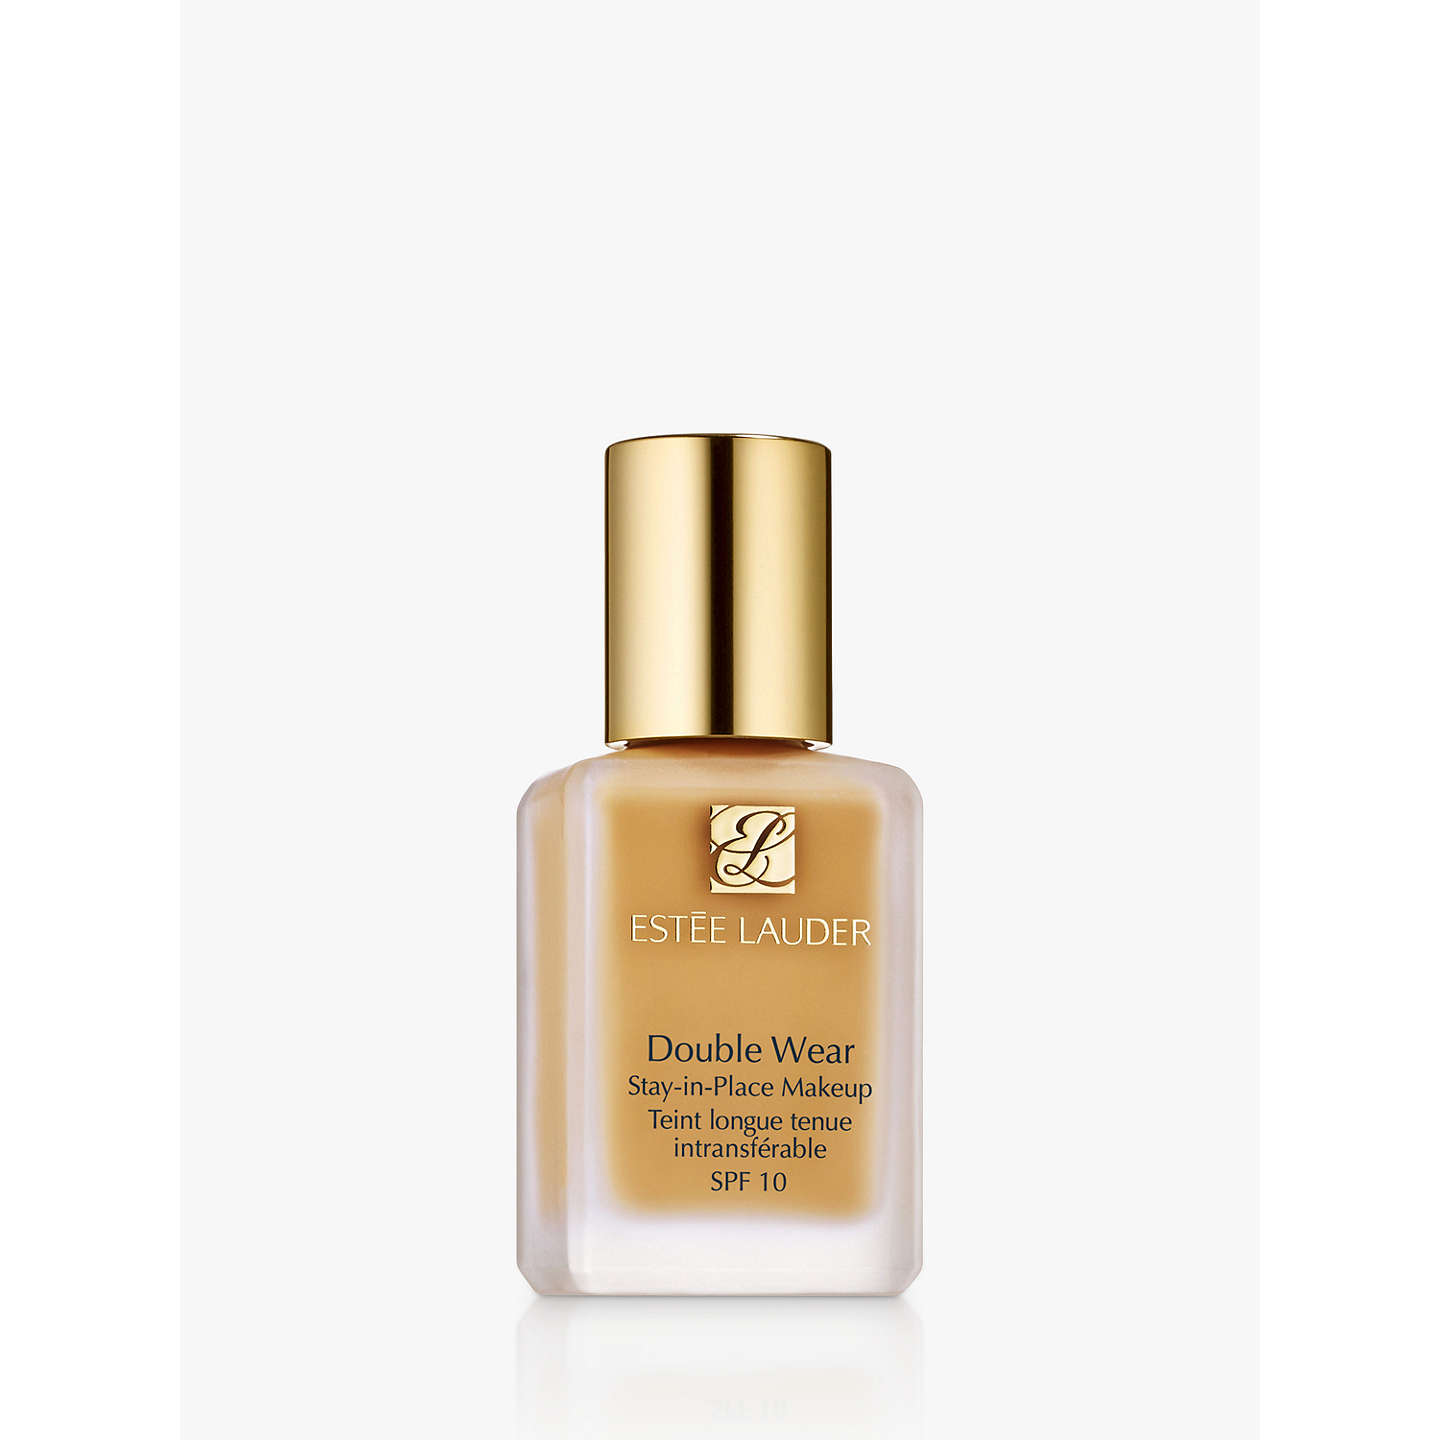 BuyEstée Lauder Double Wear Stay-In-Place Foundation Makeup SPF10, 2W1.5 Natural Suede Online at johnlewis.com